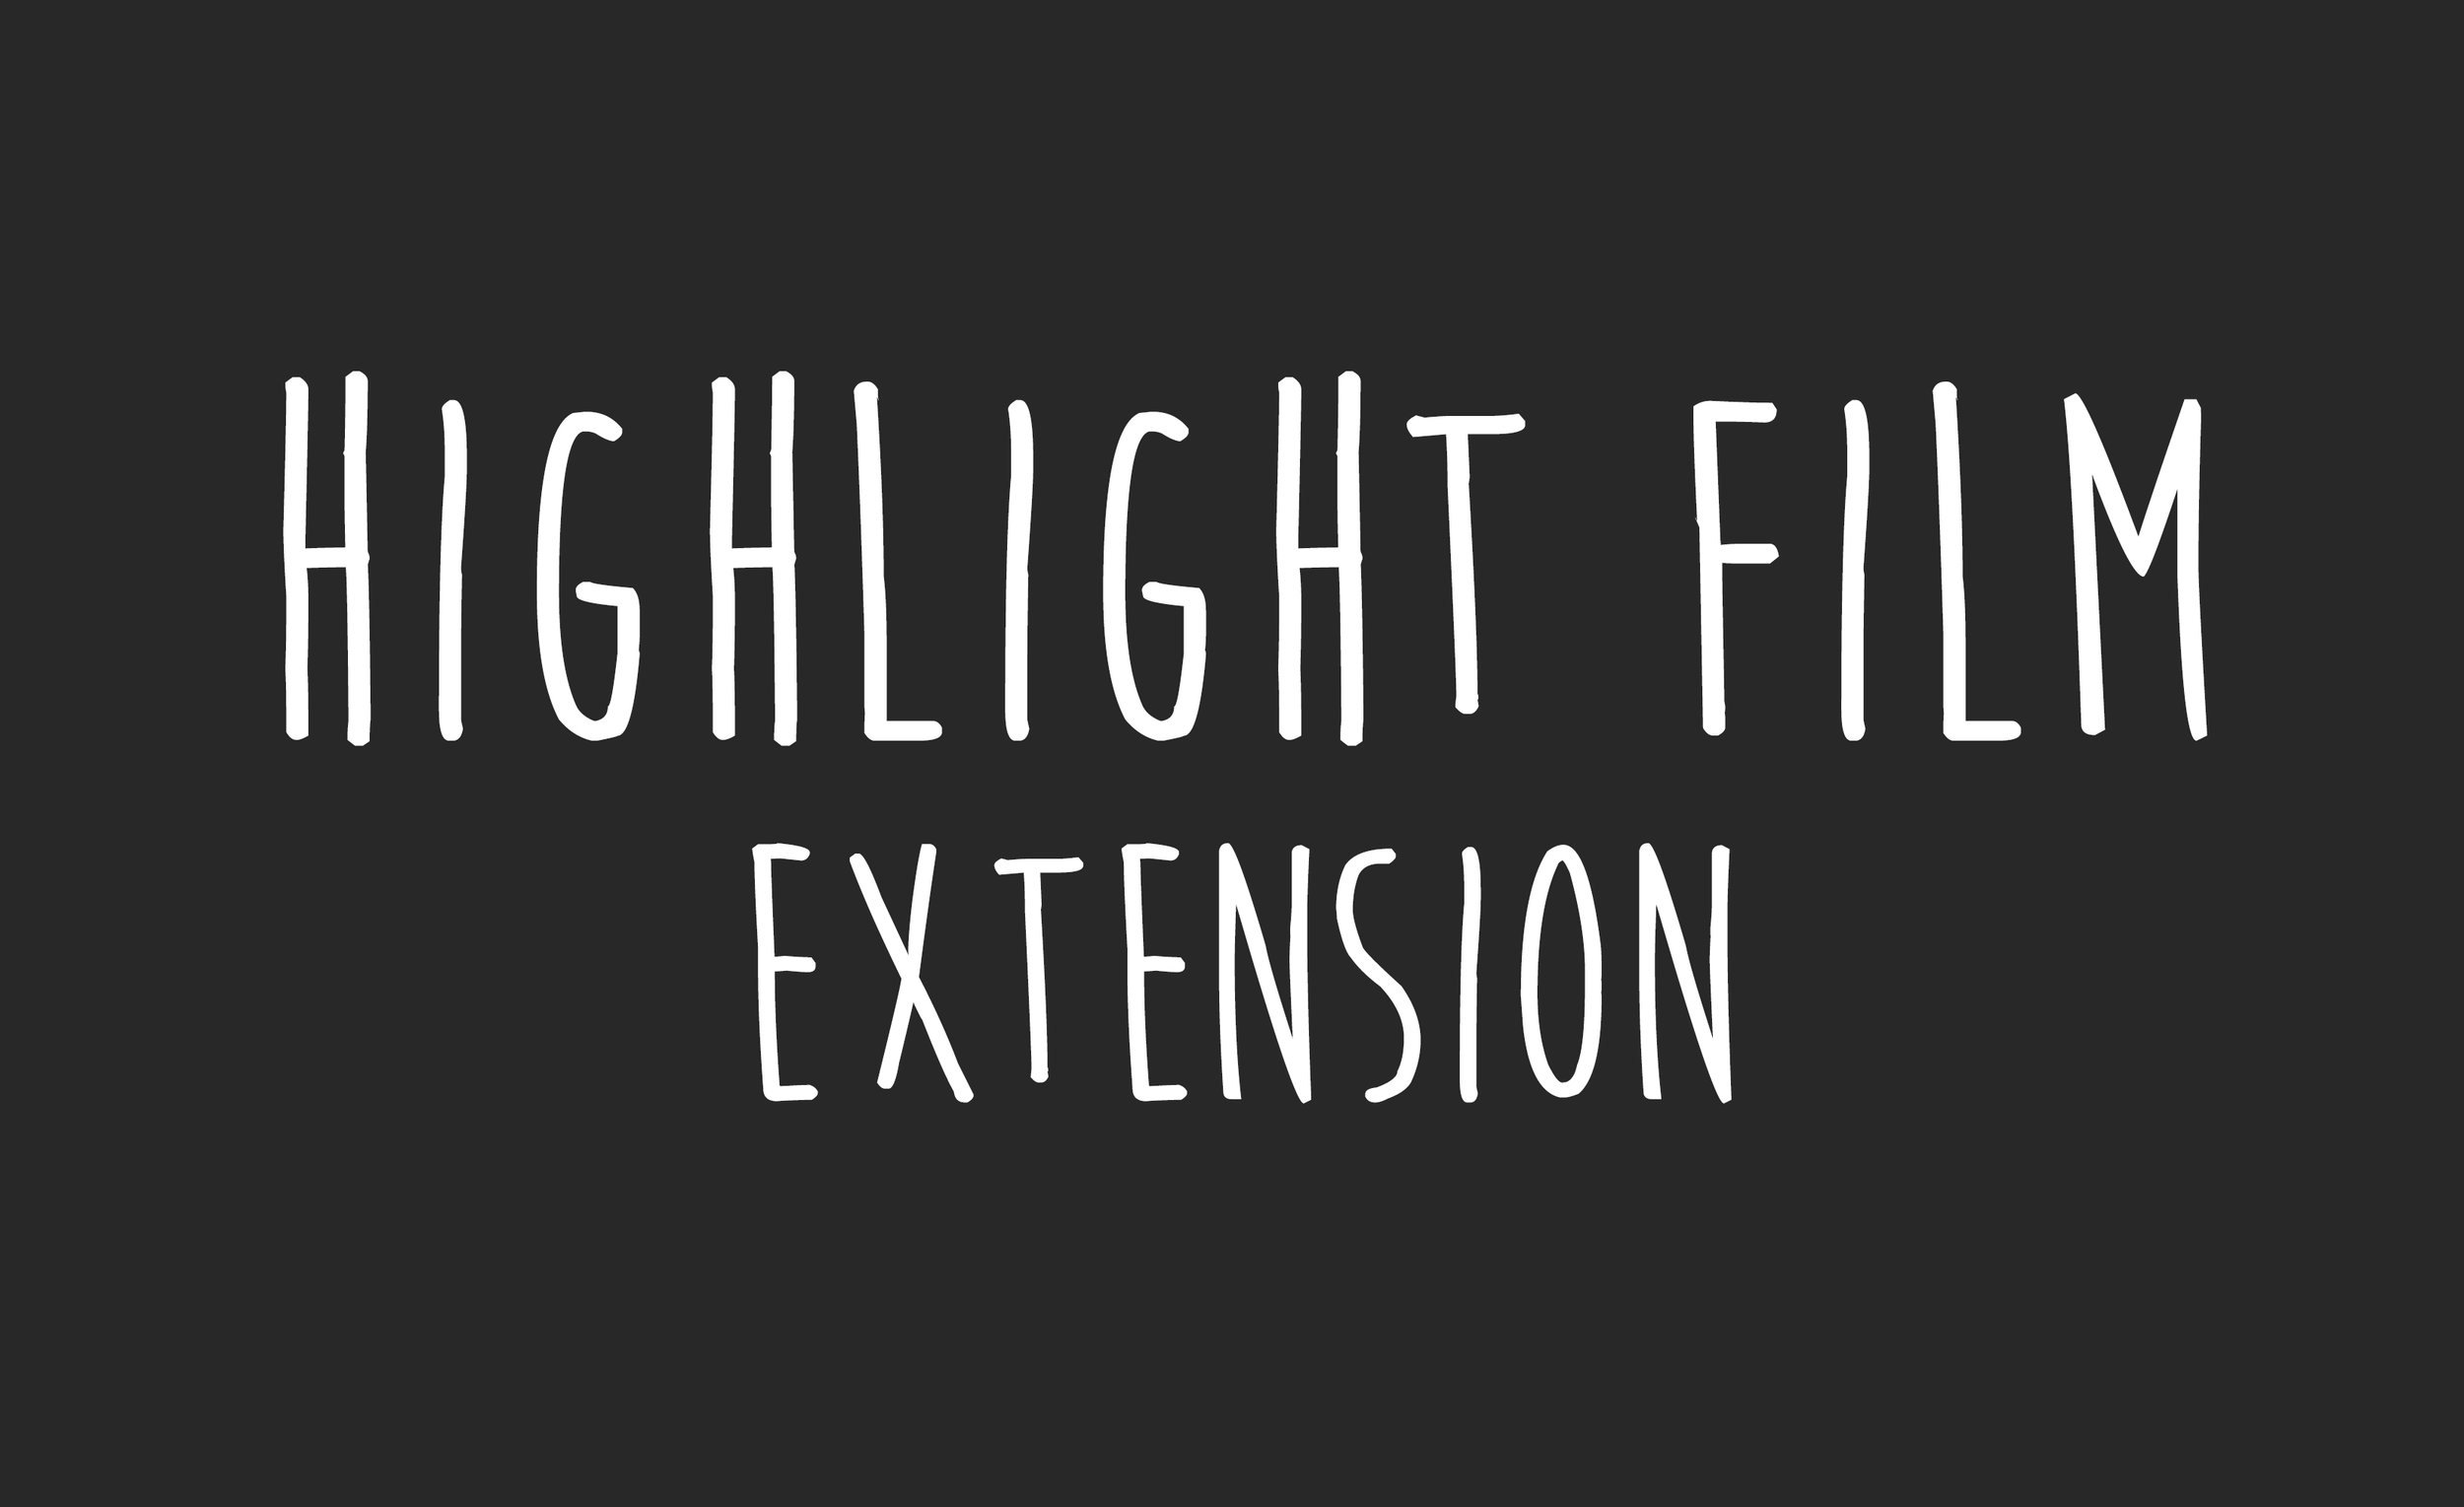 $300 - This extra allows you to extend the length of your highlight film by 1-2 minutes. The highlight film is what includes all your best moments in combination with music and vows that bring all those emotions rushing back. Adding an extra minute or two to that video is never a bad idea.